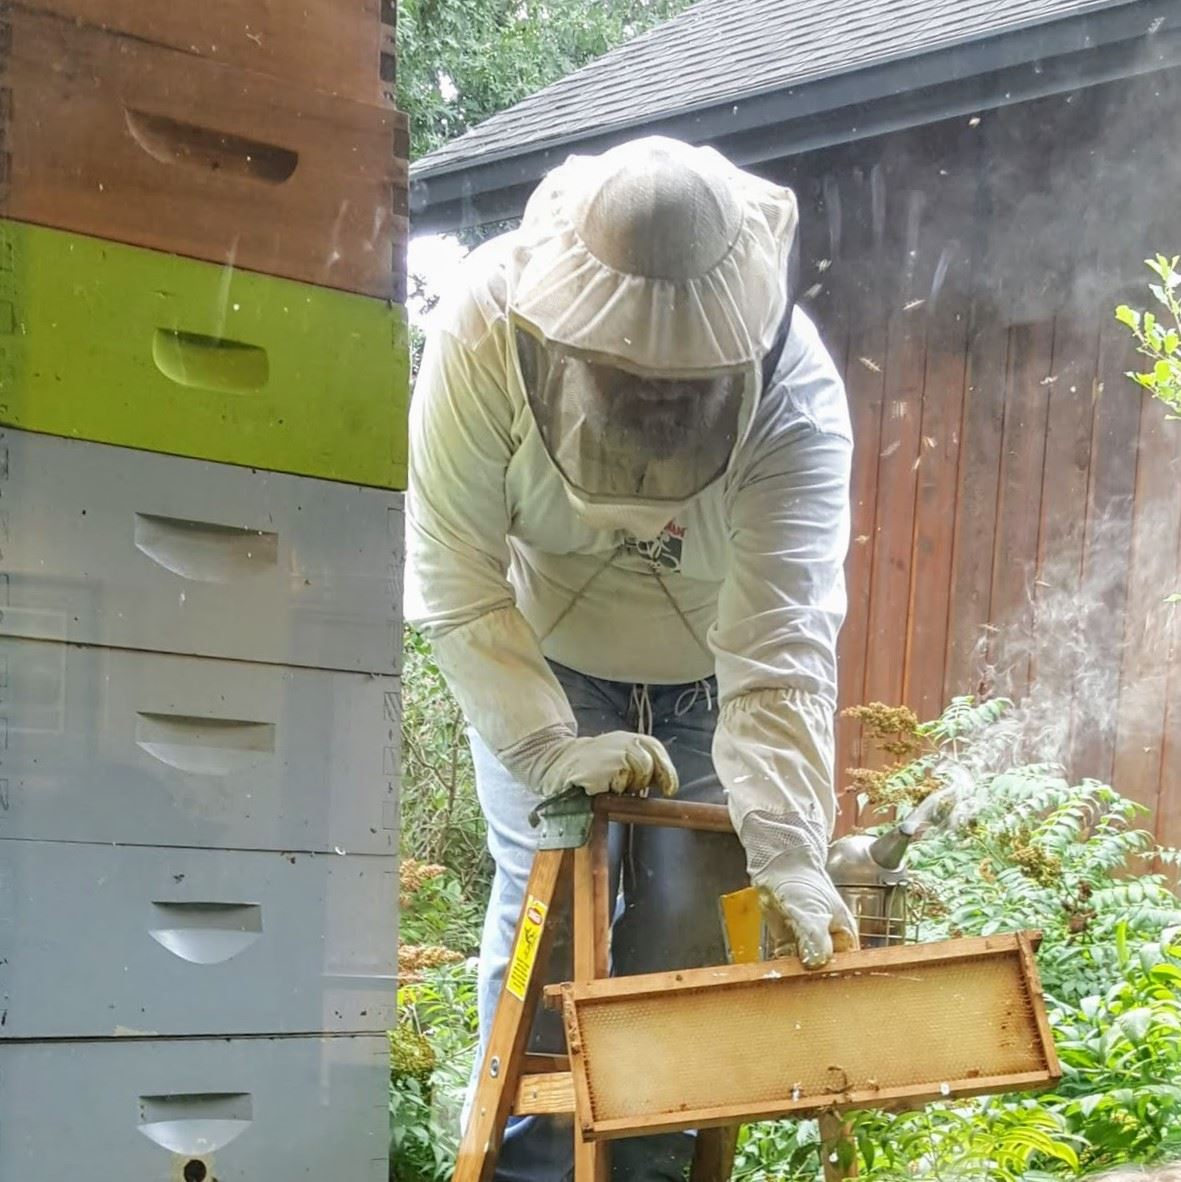 Beekeeper tending to hive